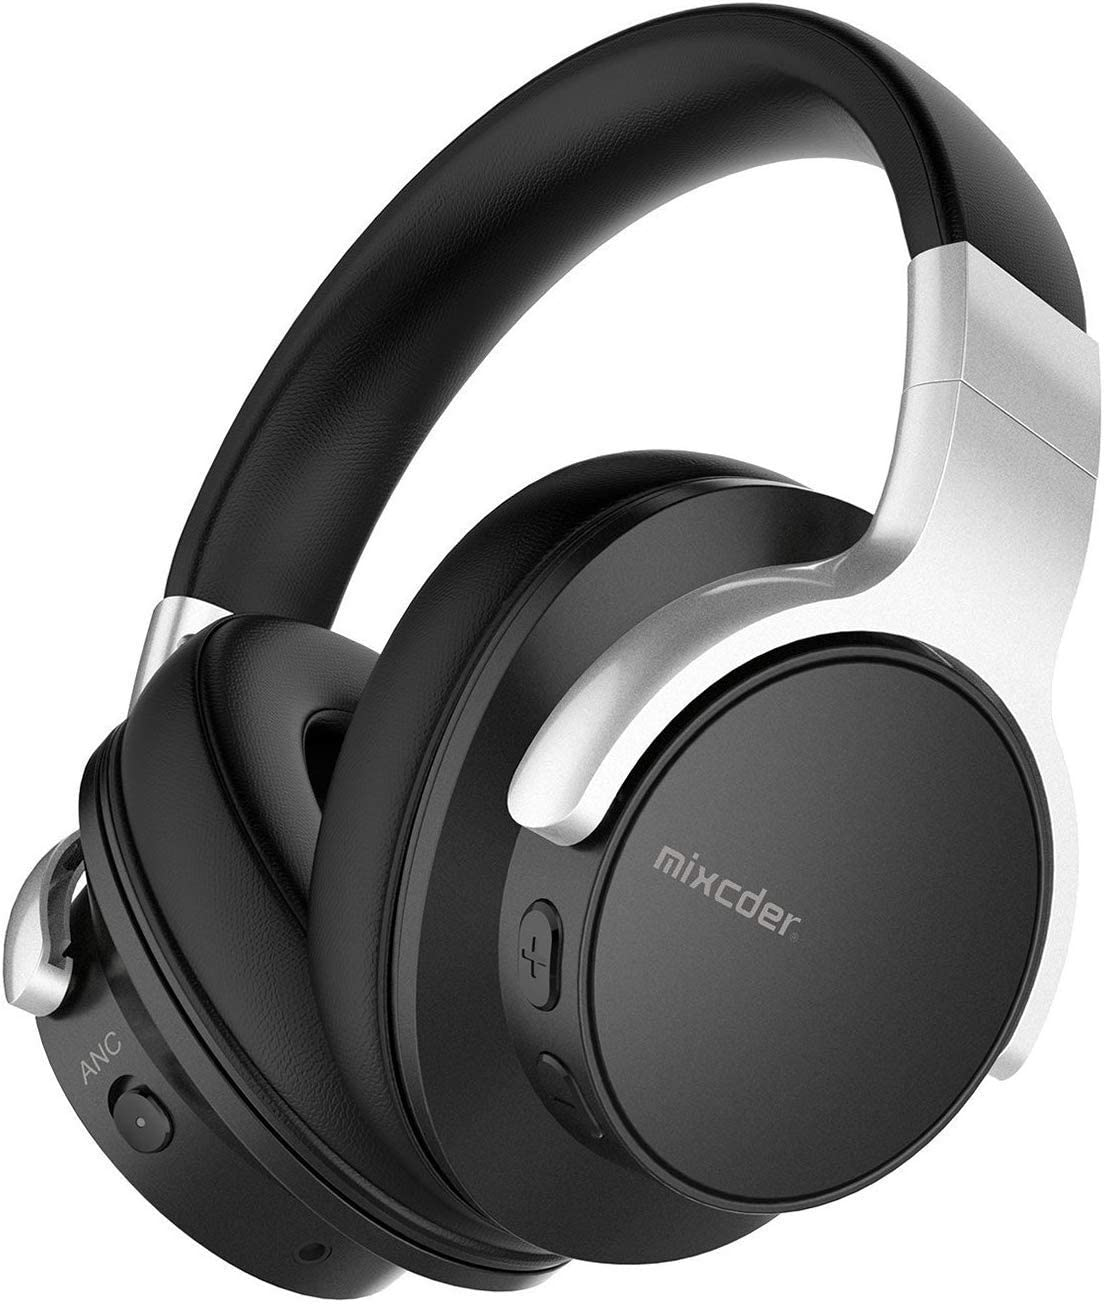 Mixcder E7 headphones